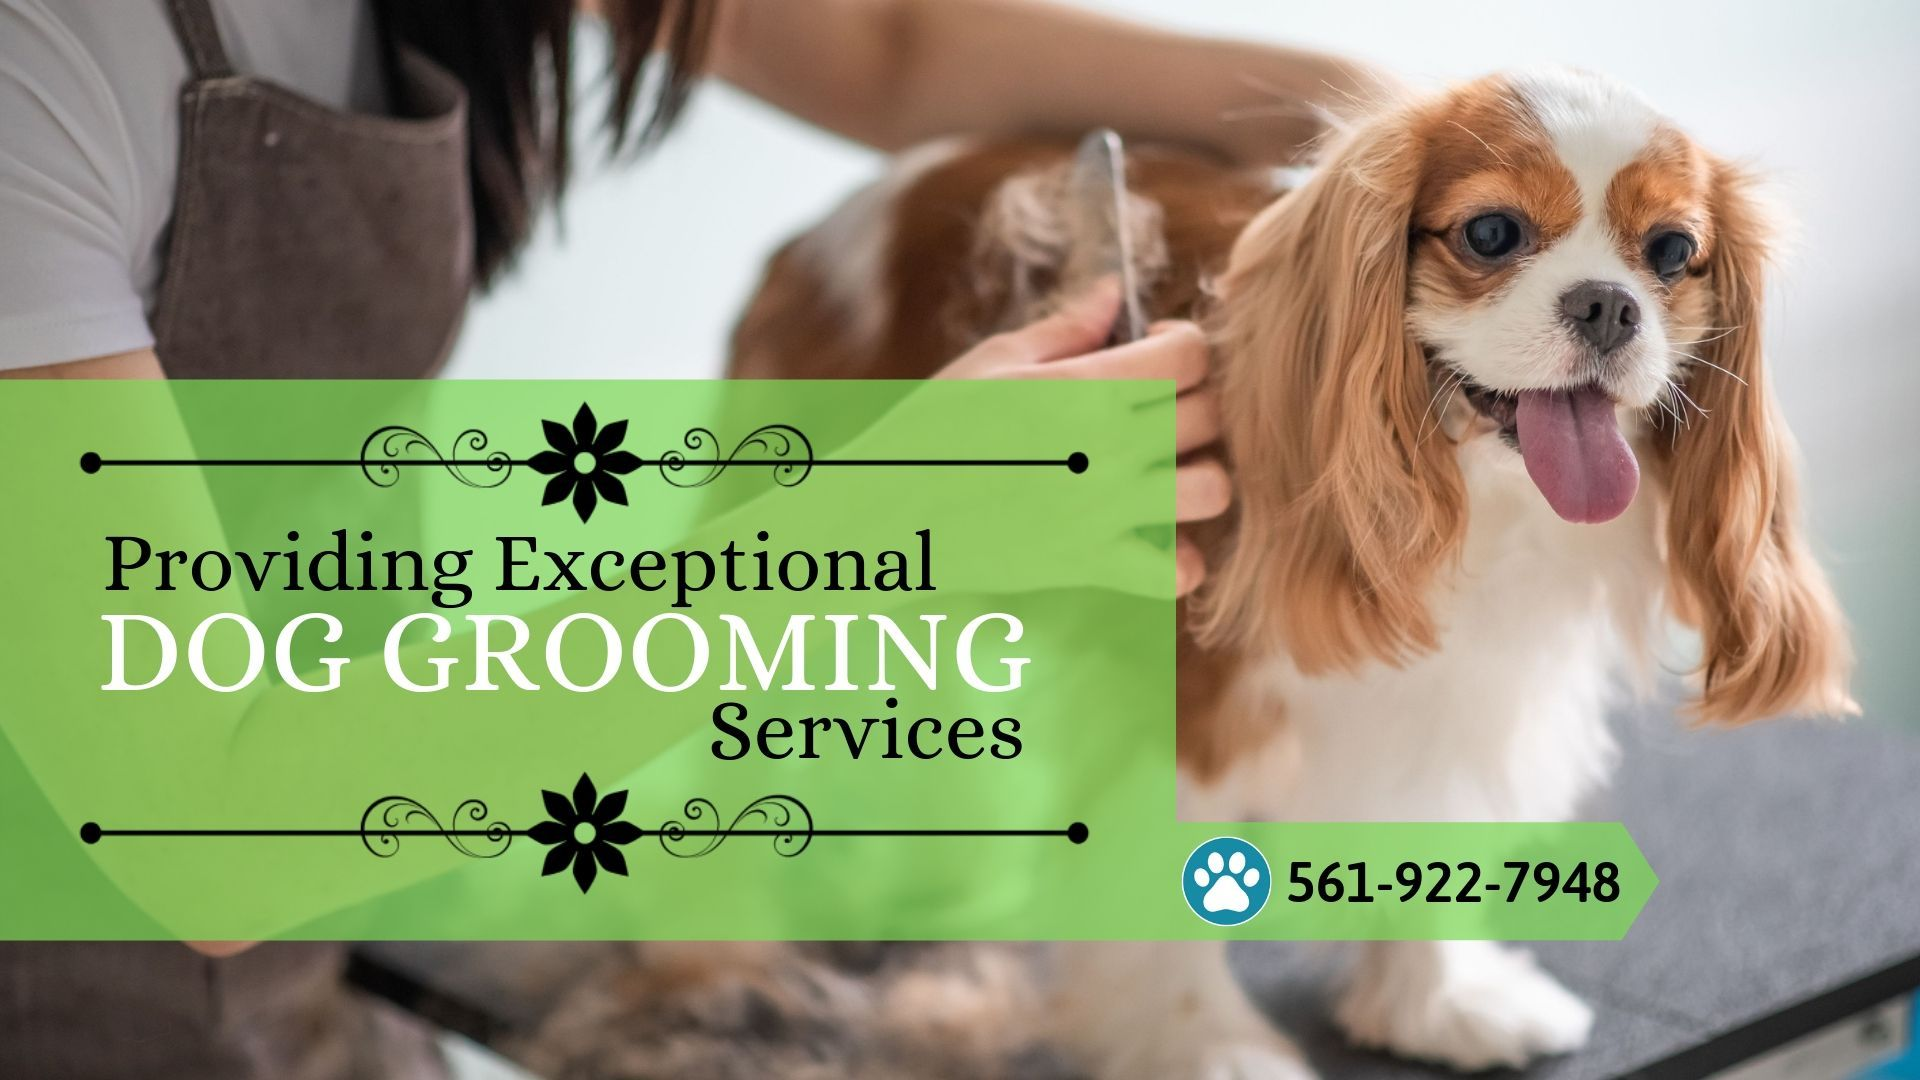 Dog Grooming Services Near Boca Raton Fl Dog Grooming Healthy